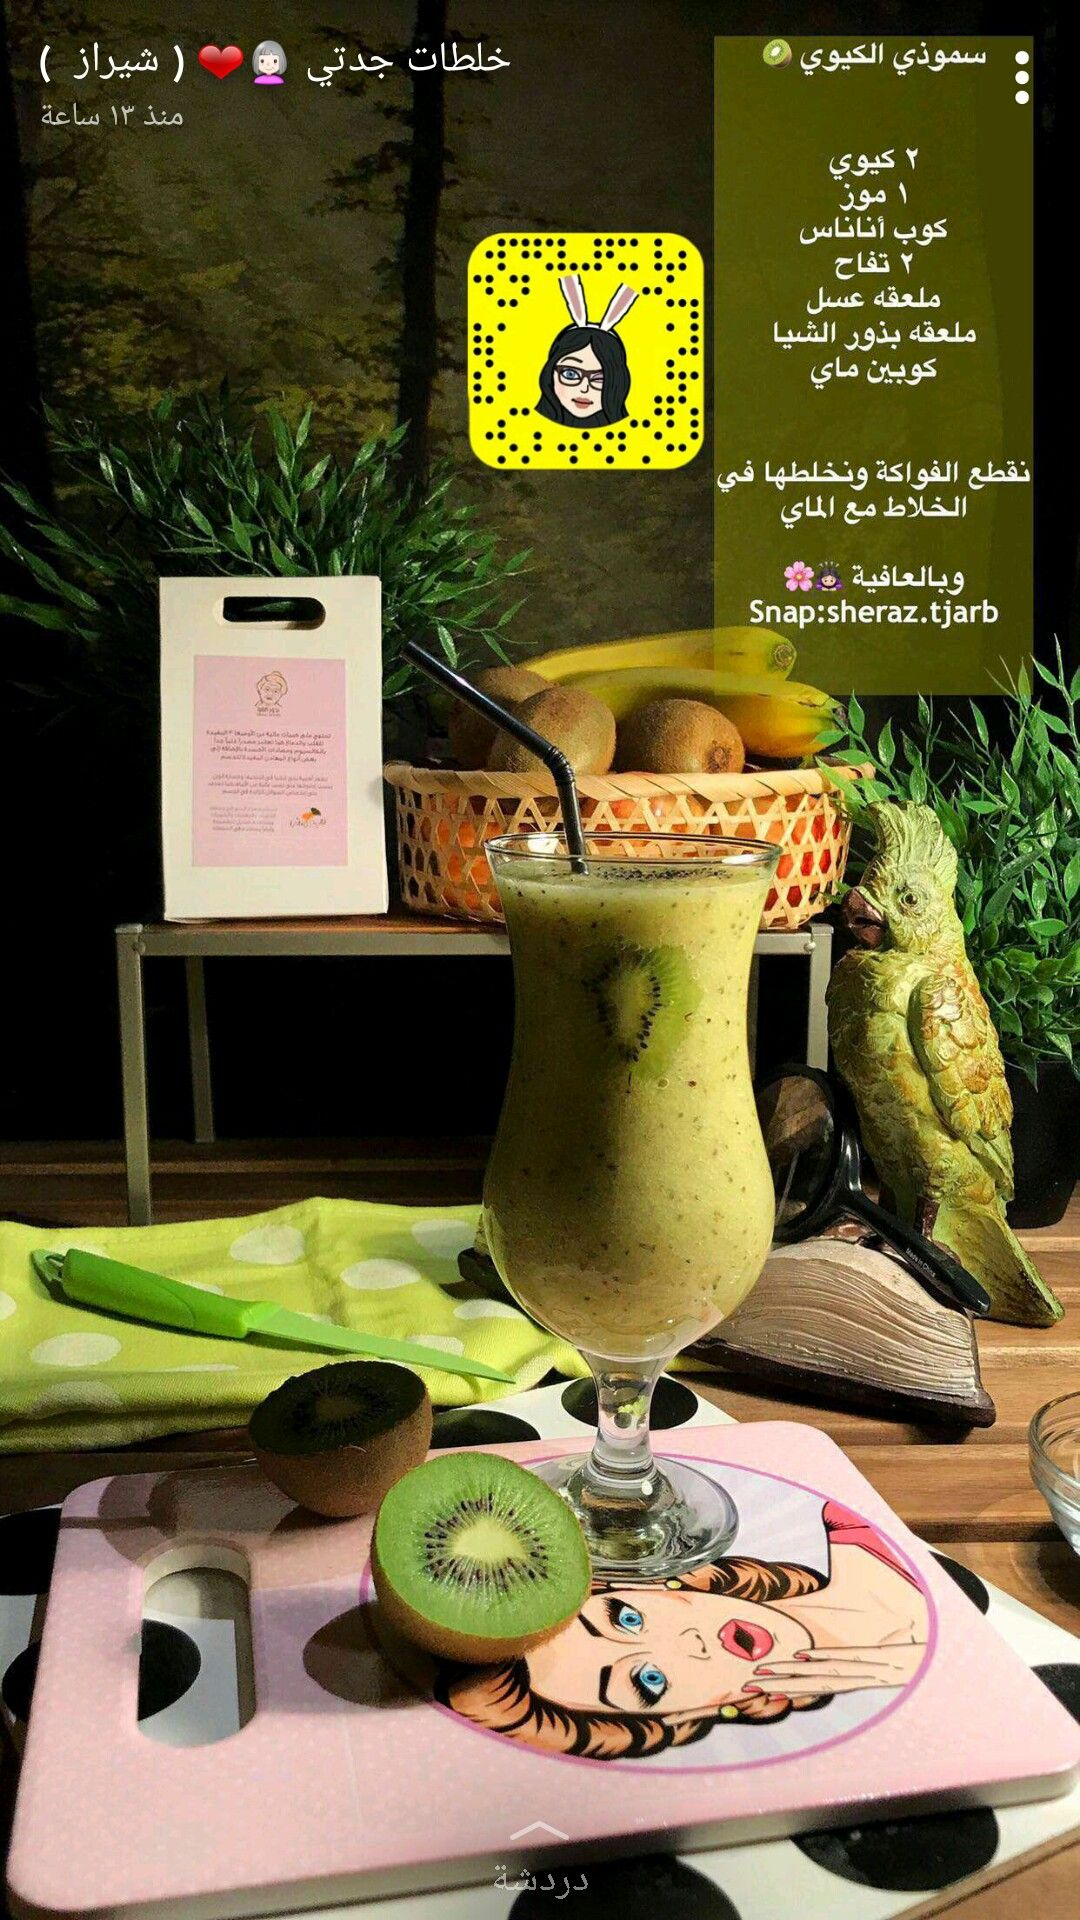 Pin By Lamq20 On عصائر Healthy Drinks Recipes Healthy Drinks Healthy Drinks Smoothies